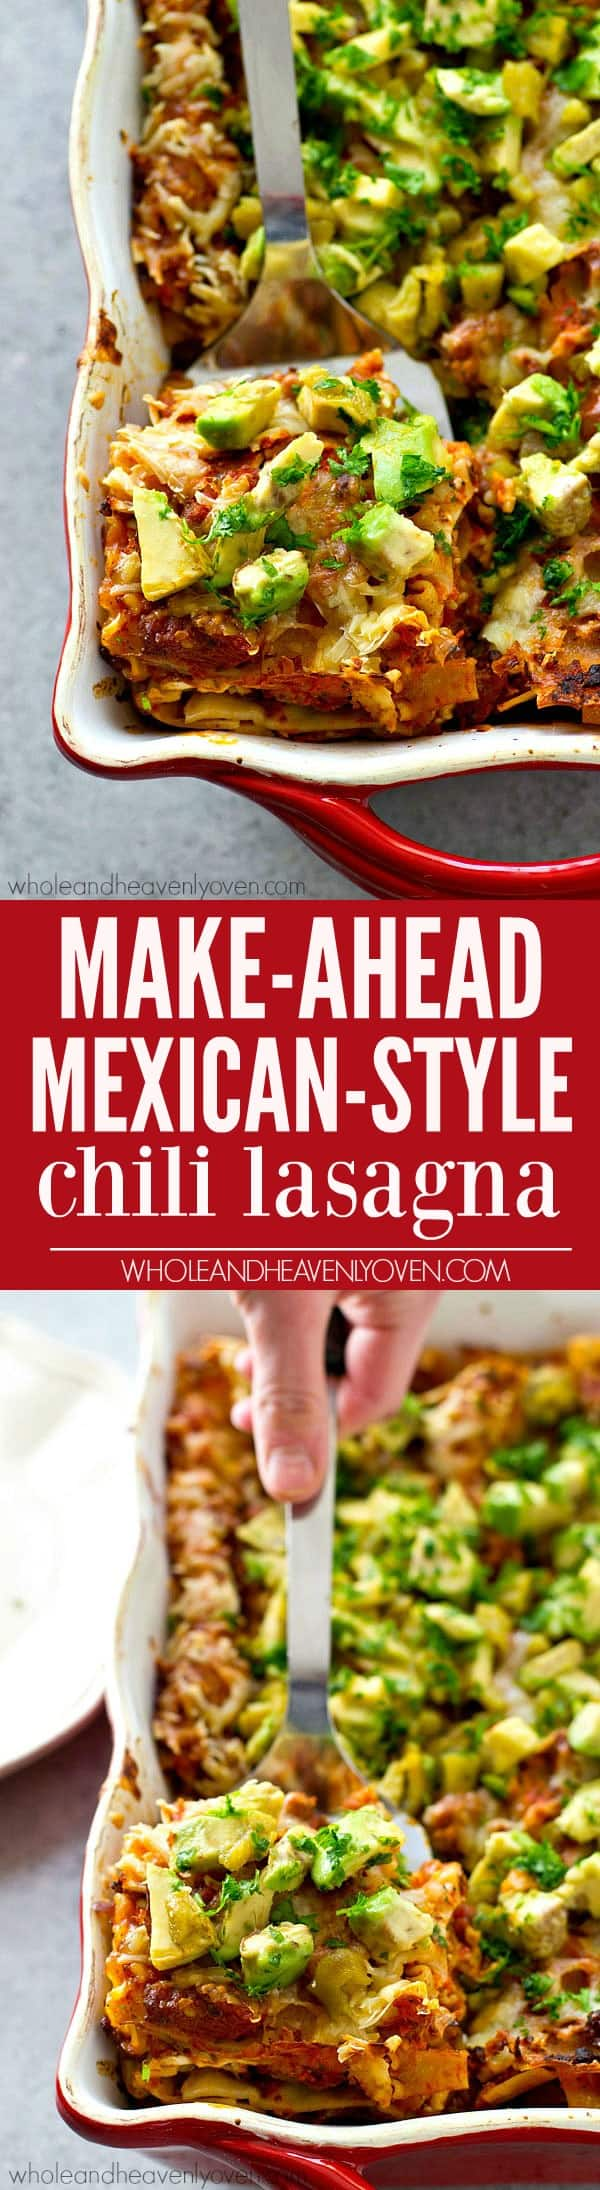 Super-easy make-ahead lasagna with a Mexican twist! Meet your new favorite lasagna in the world.